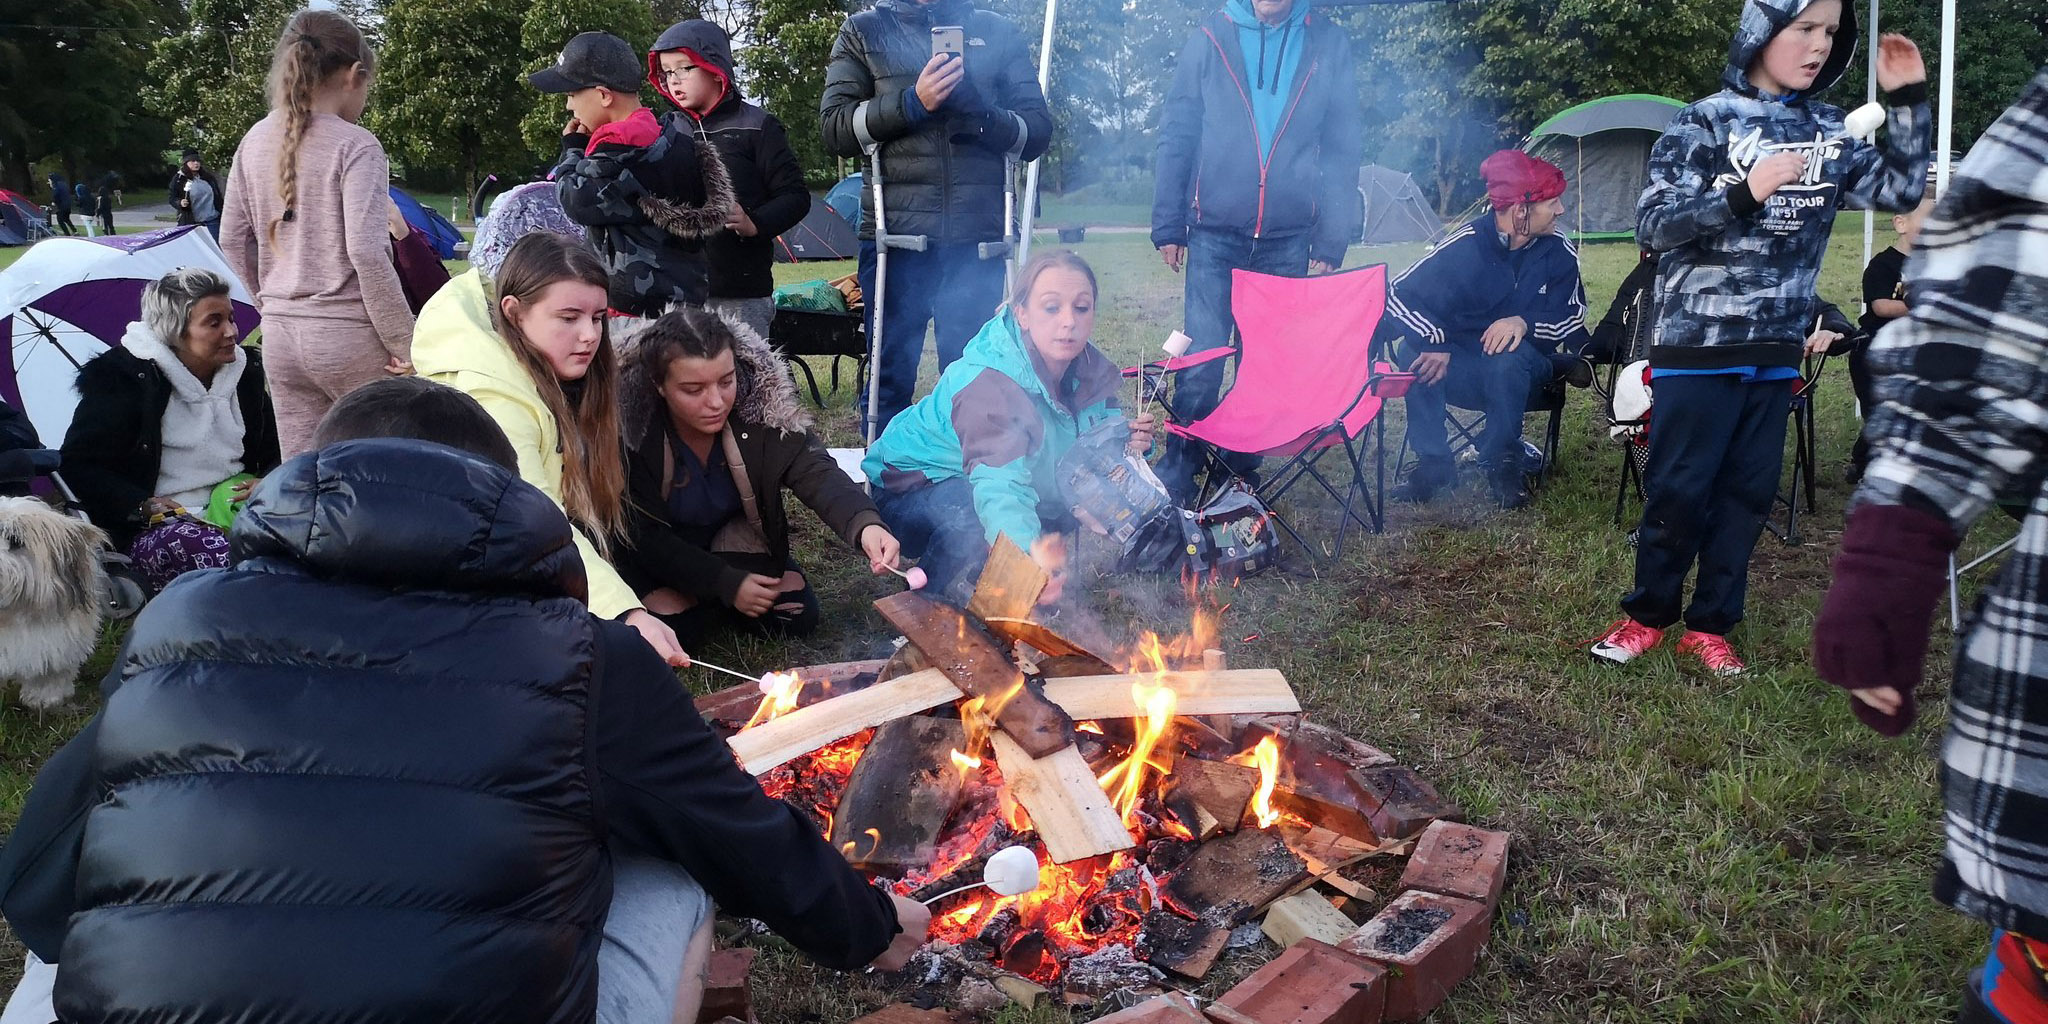 Lancashire recovery celebration: toasting marshmallows on the campfire at the LUFStock18 campout at Salus Withnell Hall